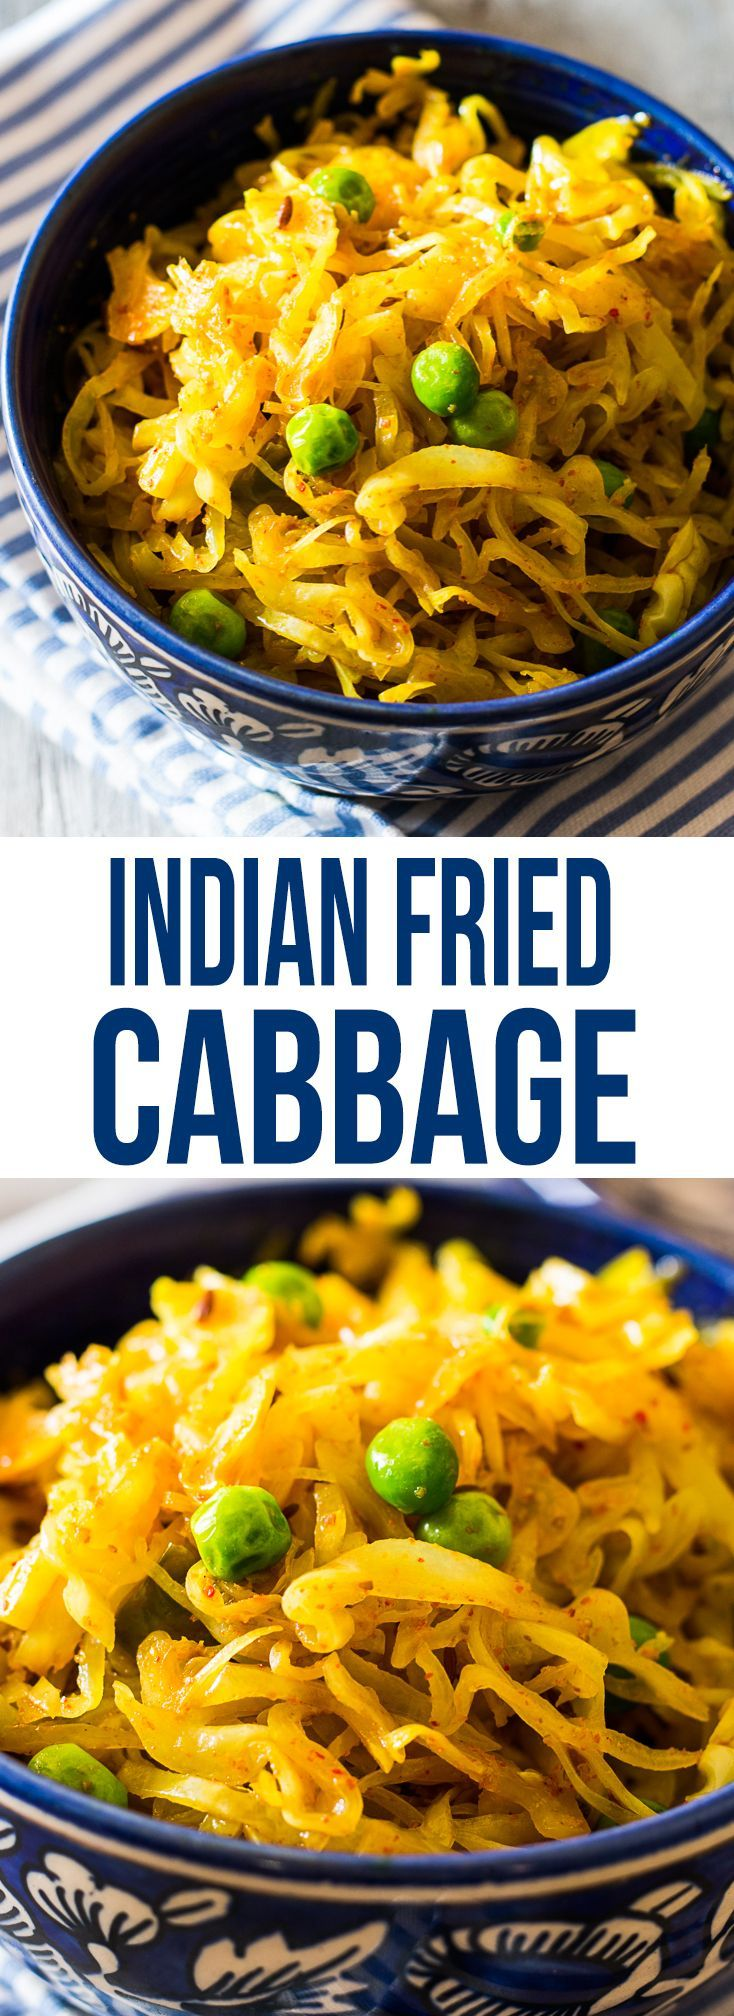 Try this Indian version of Fried Cabbage for the perfect side dish – easy, spicy and chock block full of flavor! We love adding some peas, tomatoes and potatoes for a more hearty version